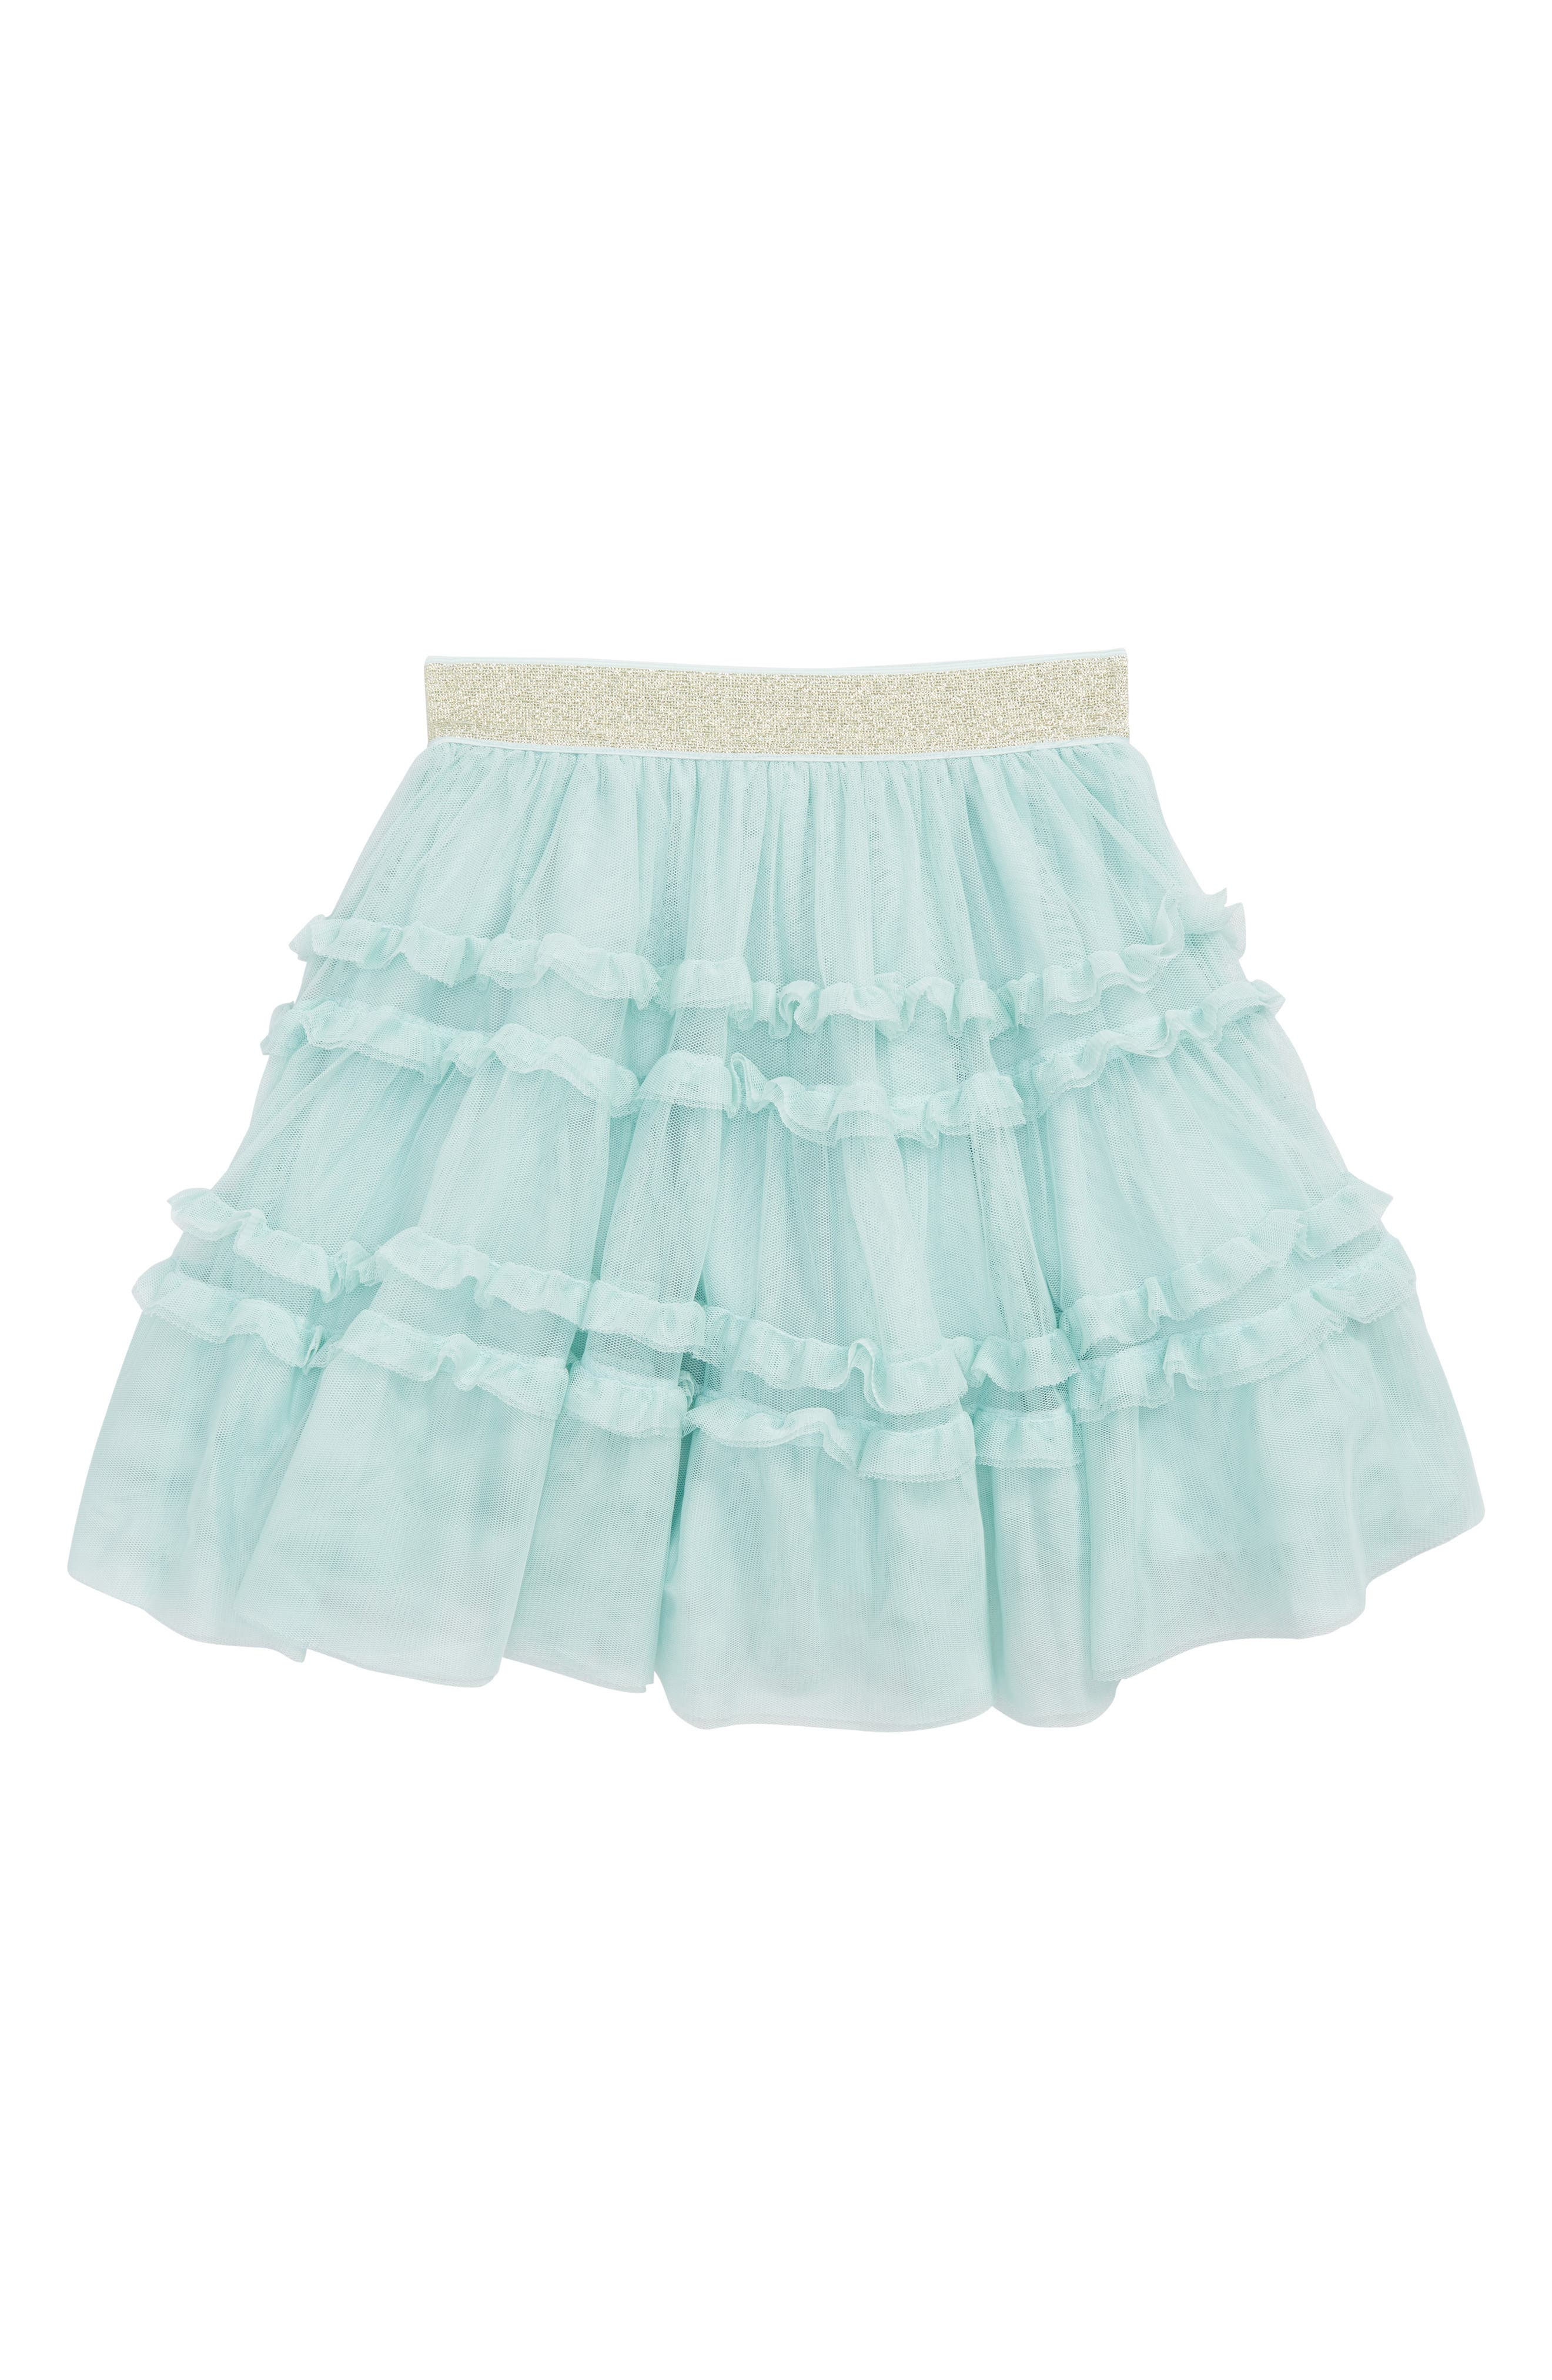 Mini Boden Ruffle Tulle Skirt (Toddler Girls, Little Girls & Big Girls)